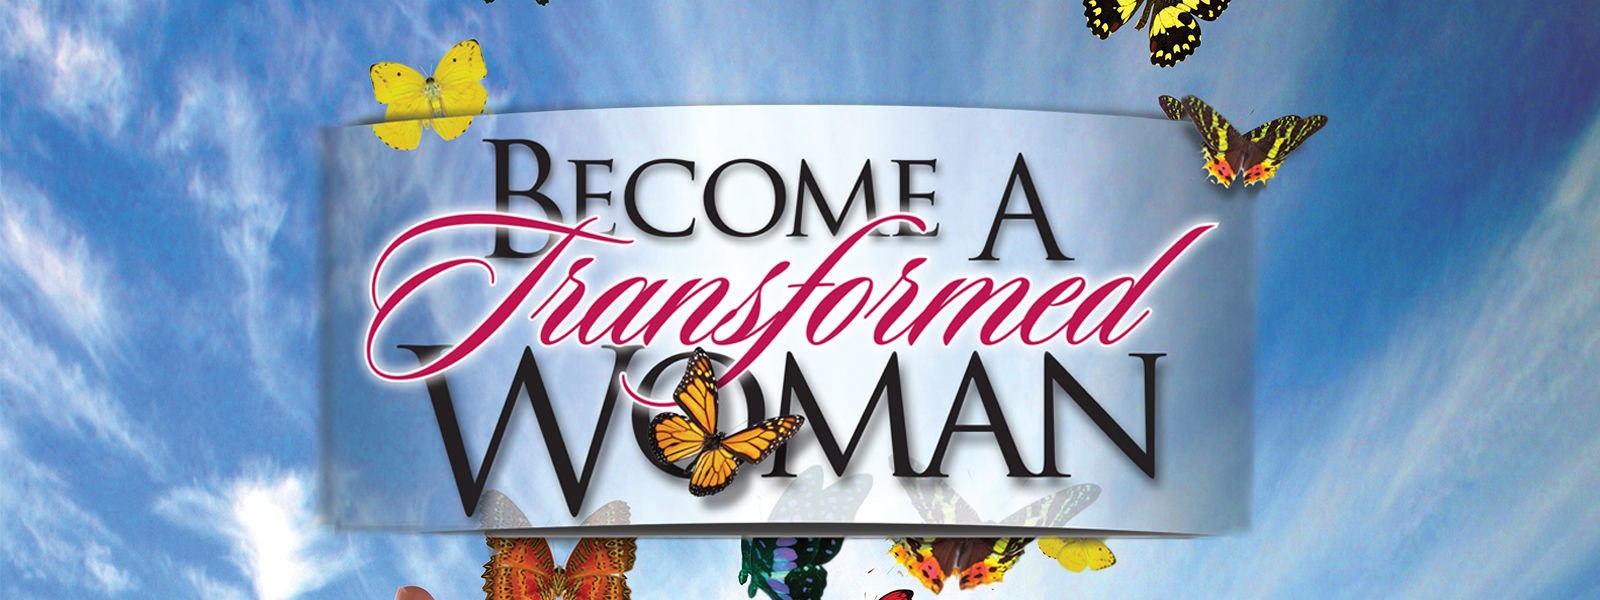 Becoming a Transformed Woman